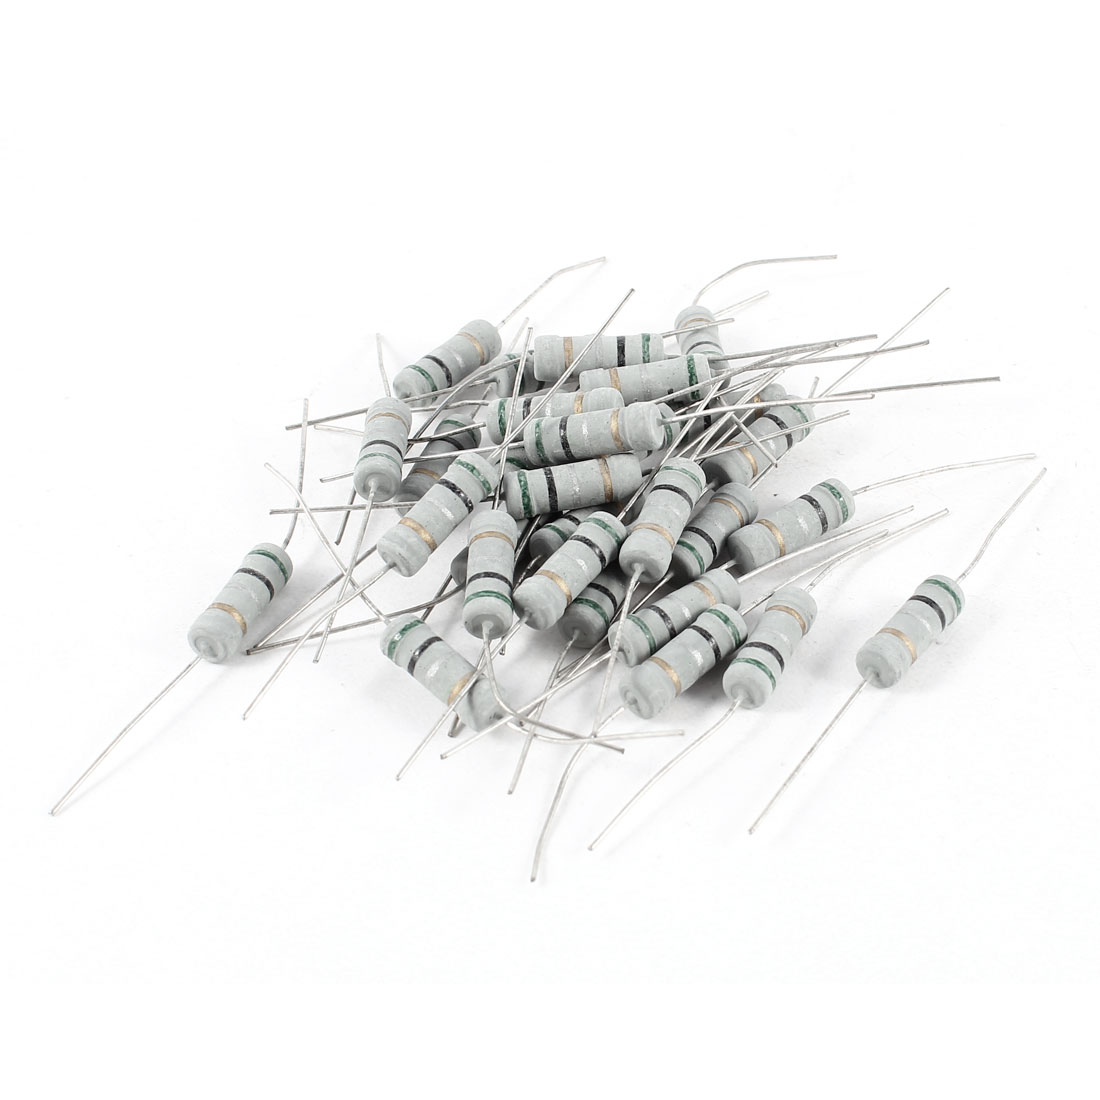 30 Pcs Axial Lead 2W 0.5Ohm 5% Tolerence Metal Oxide Film Resistor Resistance